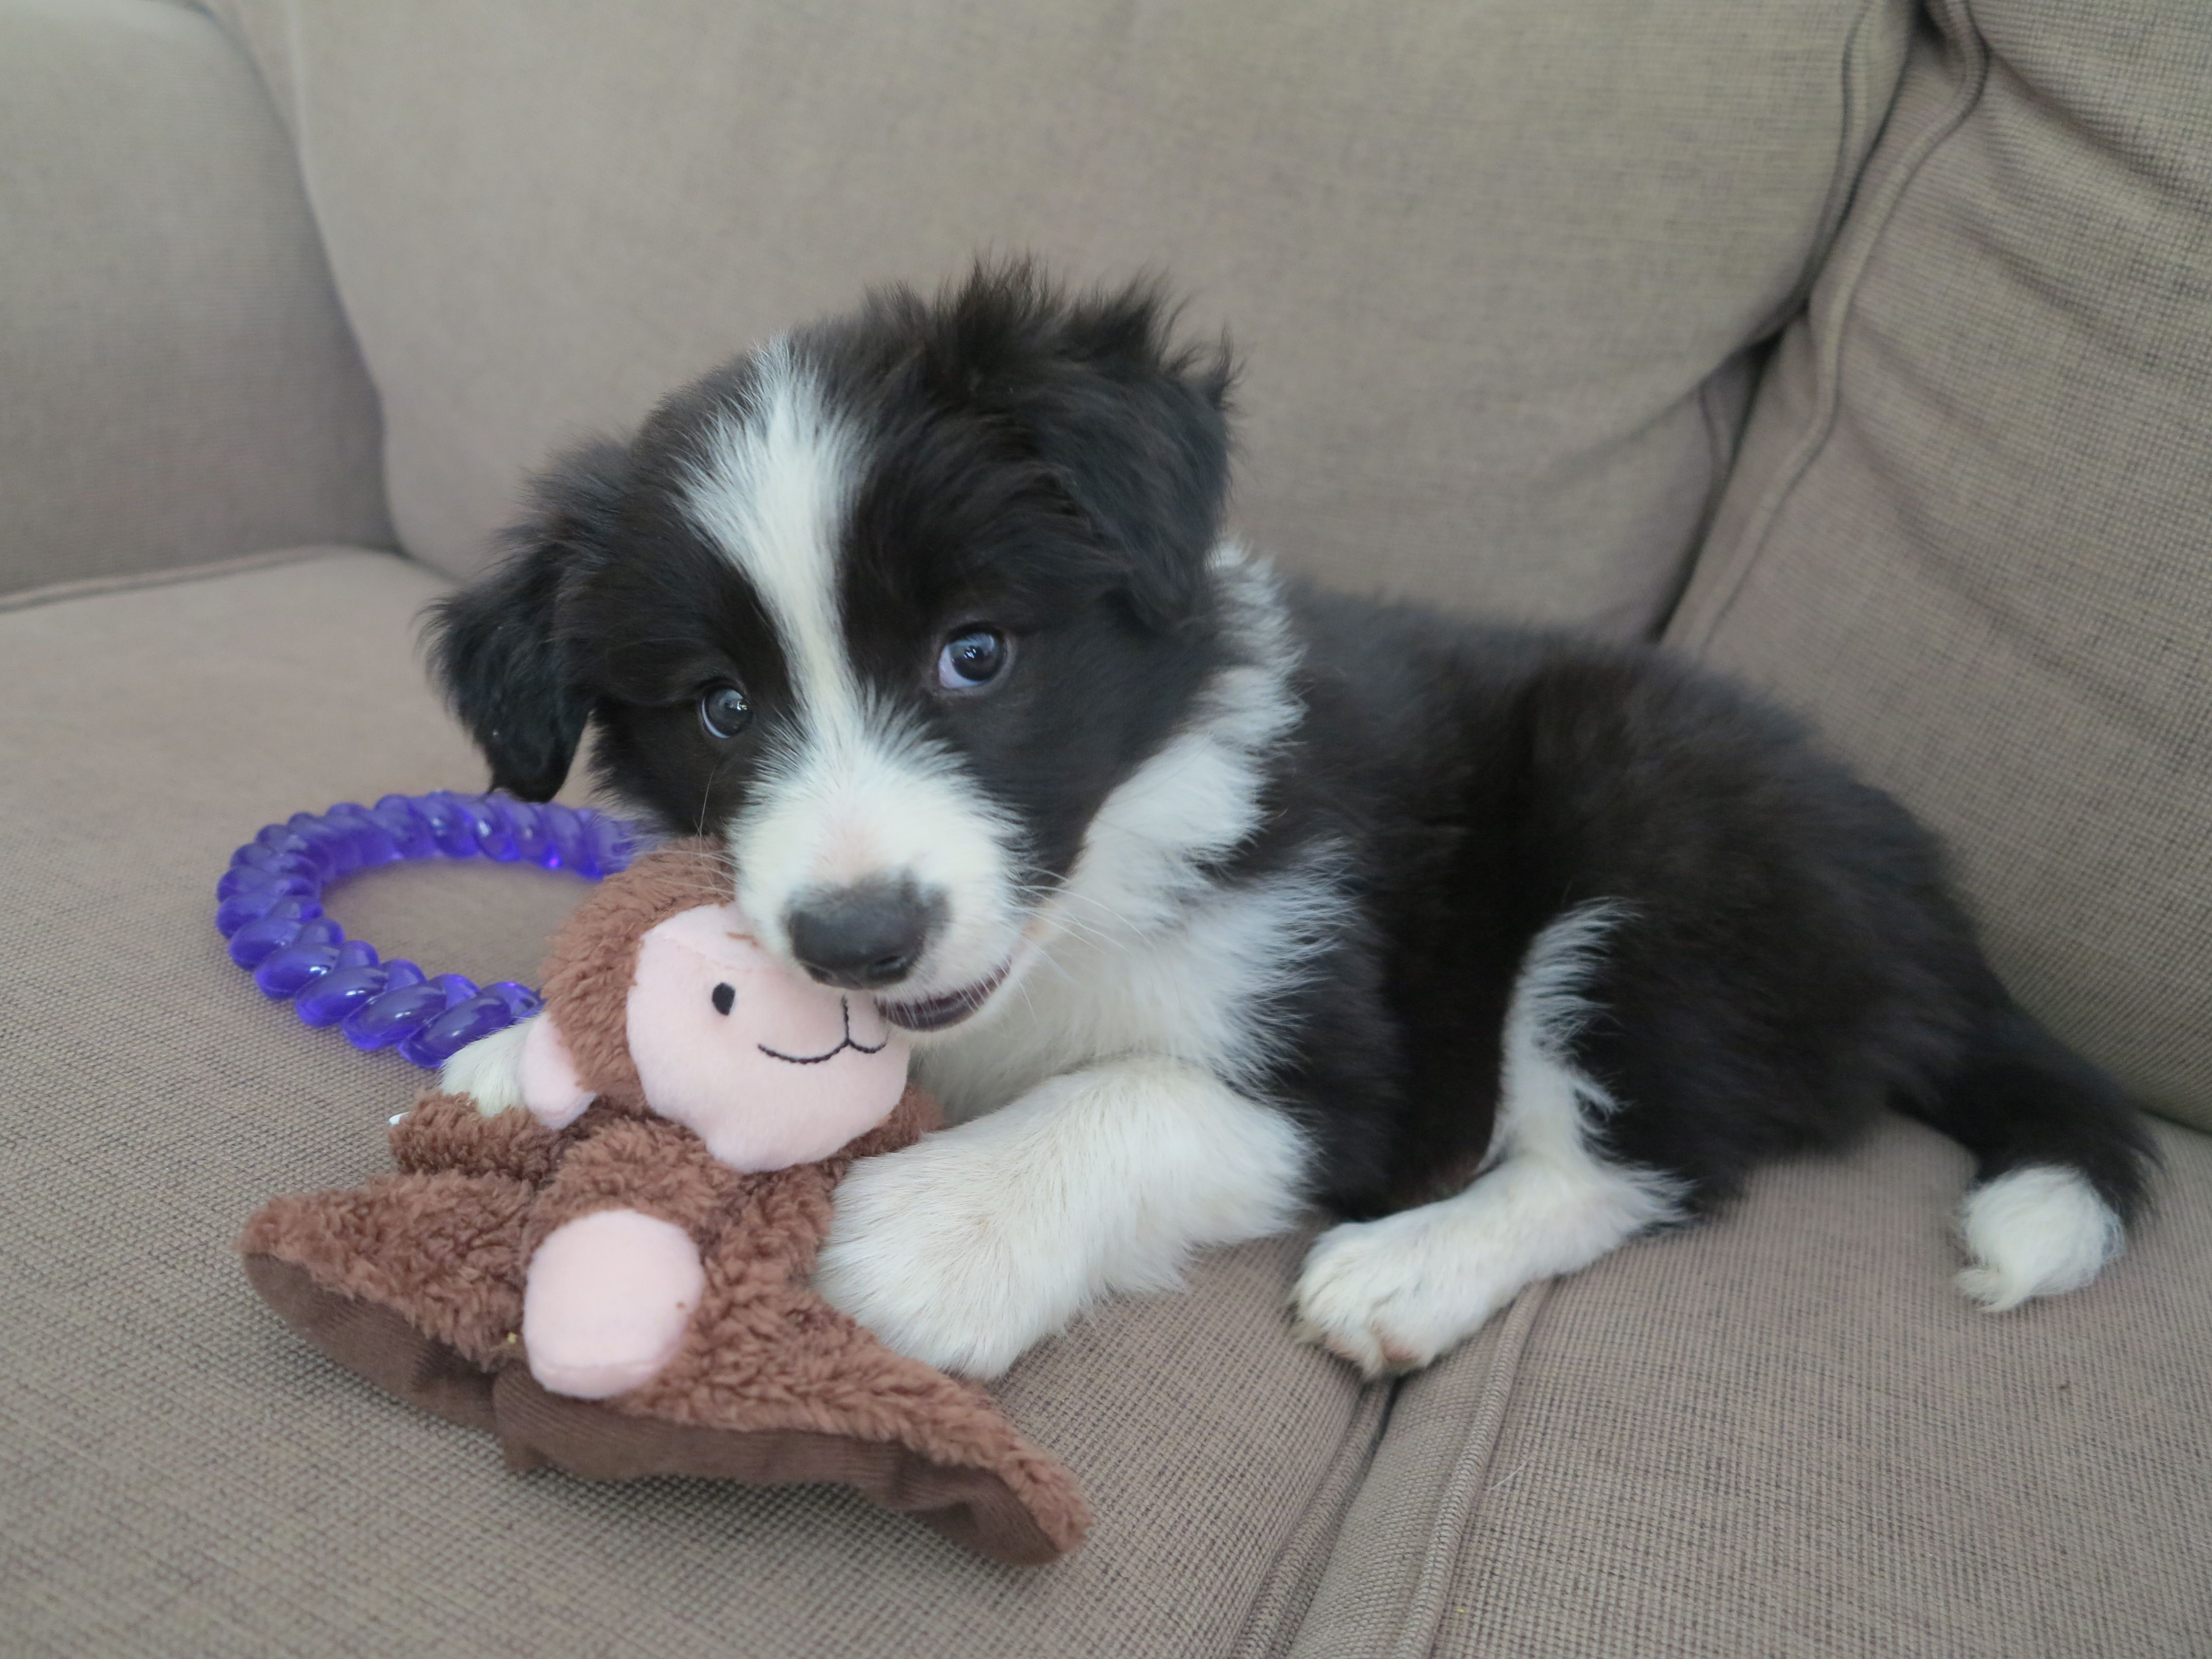 Our New Baby Girl Black And White Border Collie Puppy 3 Loves Her Little Monkey Collie Puppies Border Collie Puppies Puppy Adoption